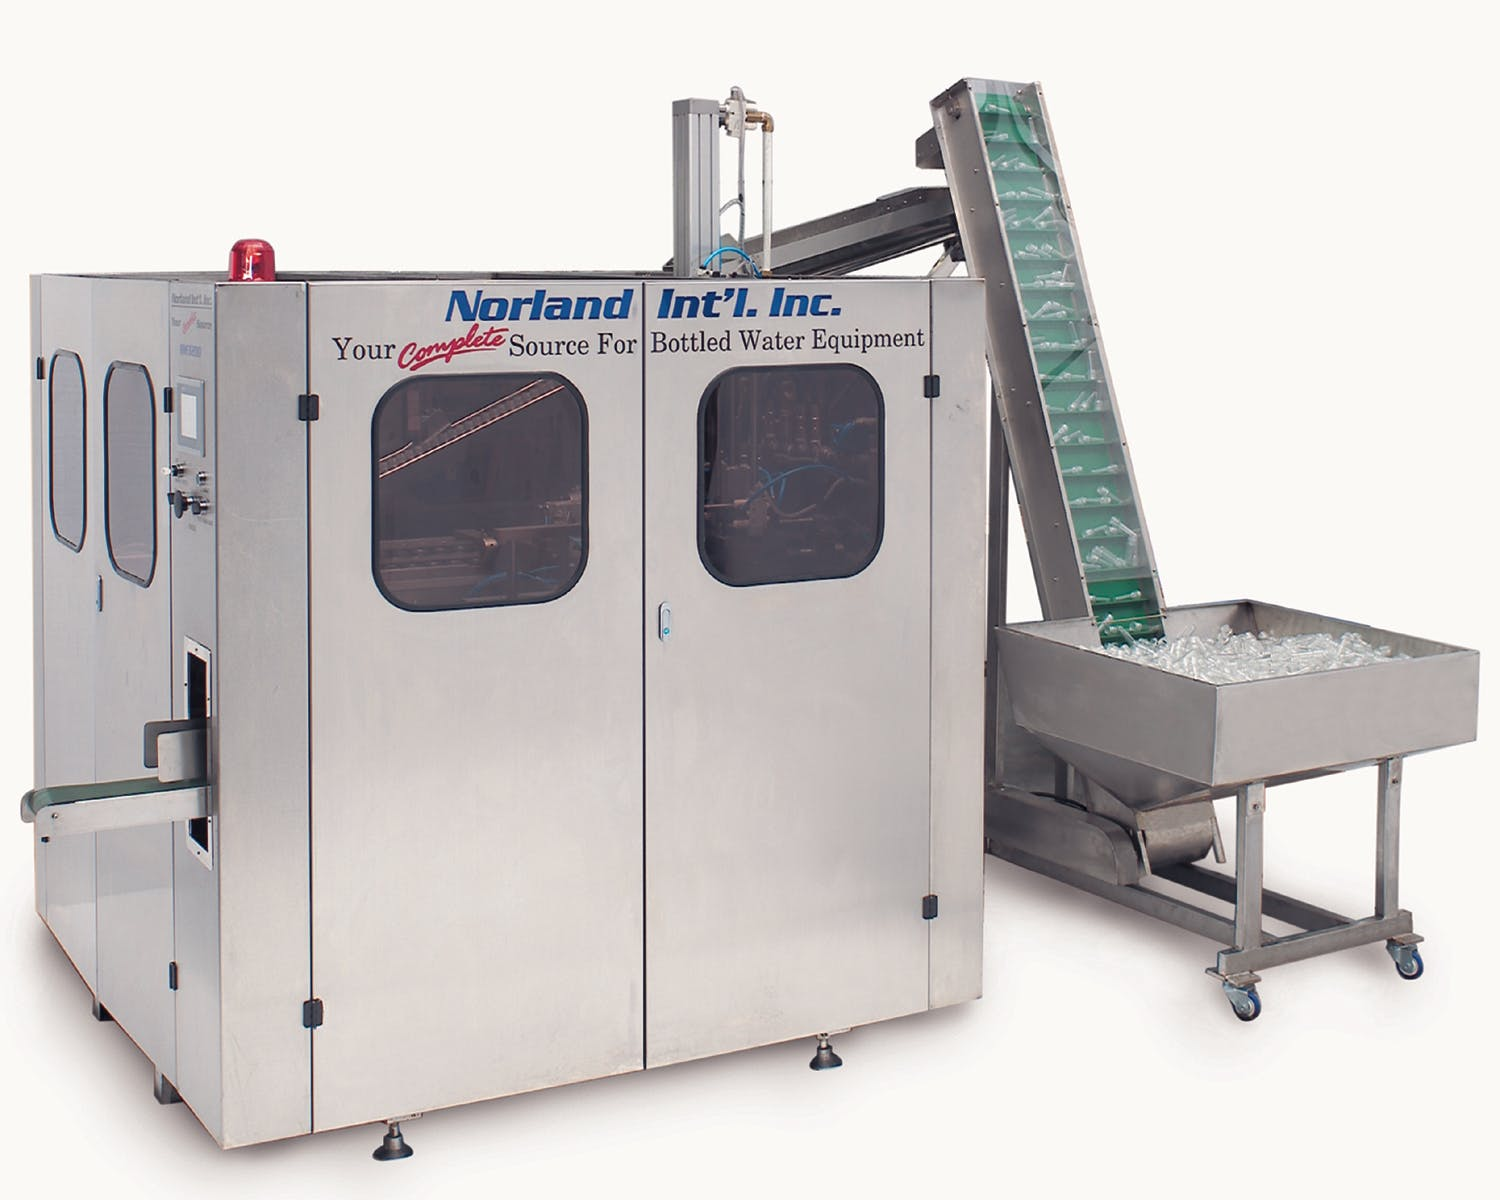 Freedom 3000 - Blow Molder (Designed for water bottles only) - sold by American Beer Equipment